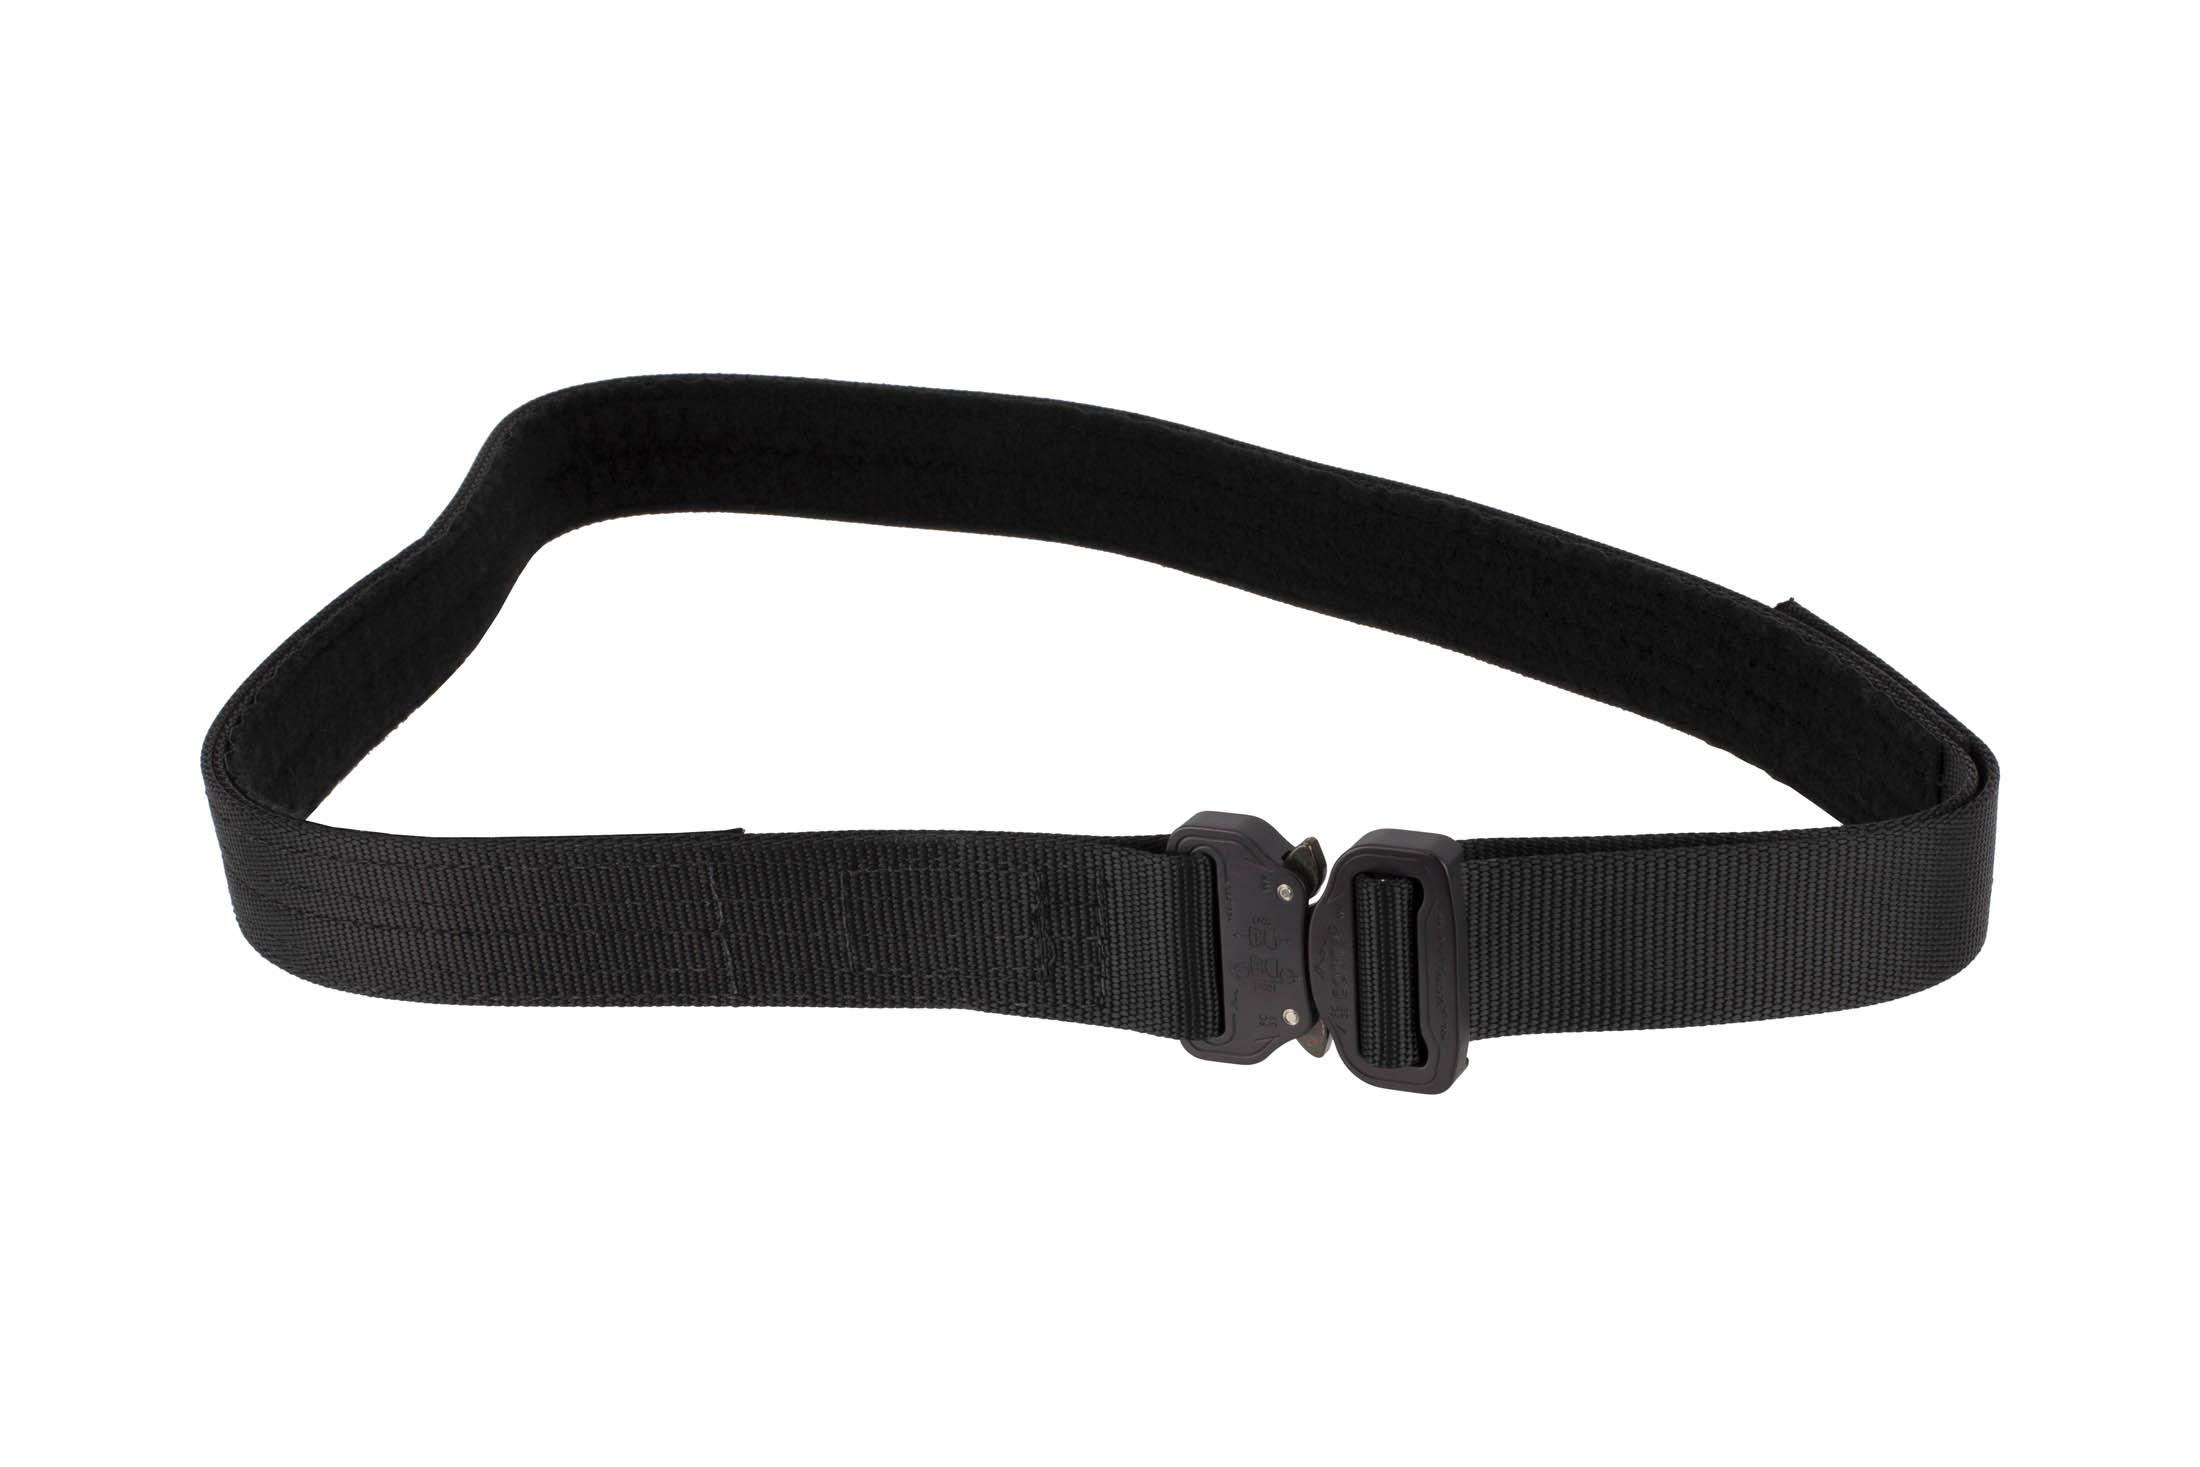 High Speed Gear 1.5in extra large black Rigger Belt coyote is equipped with a cobra buckle